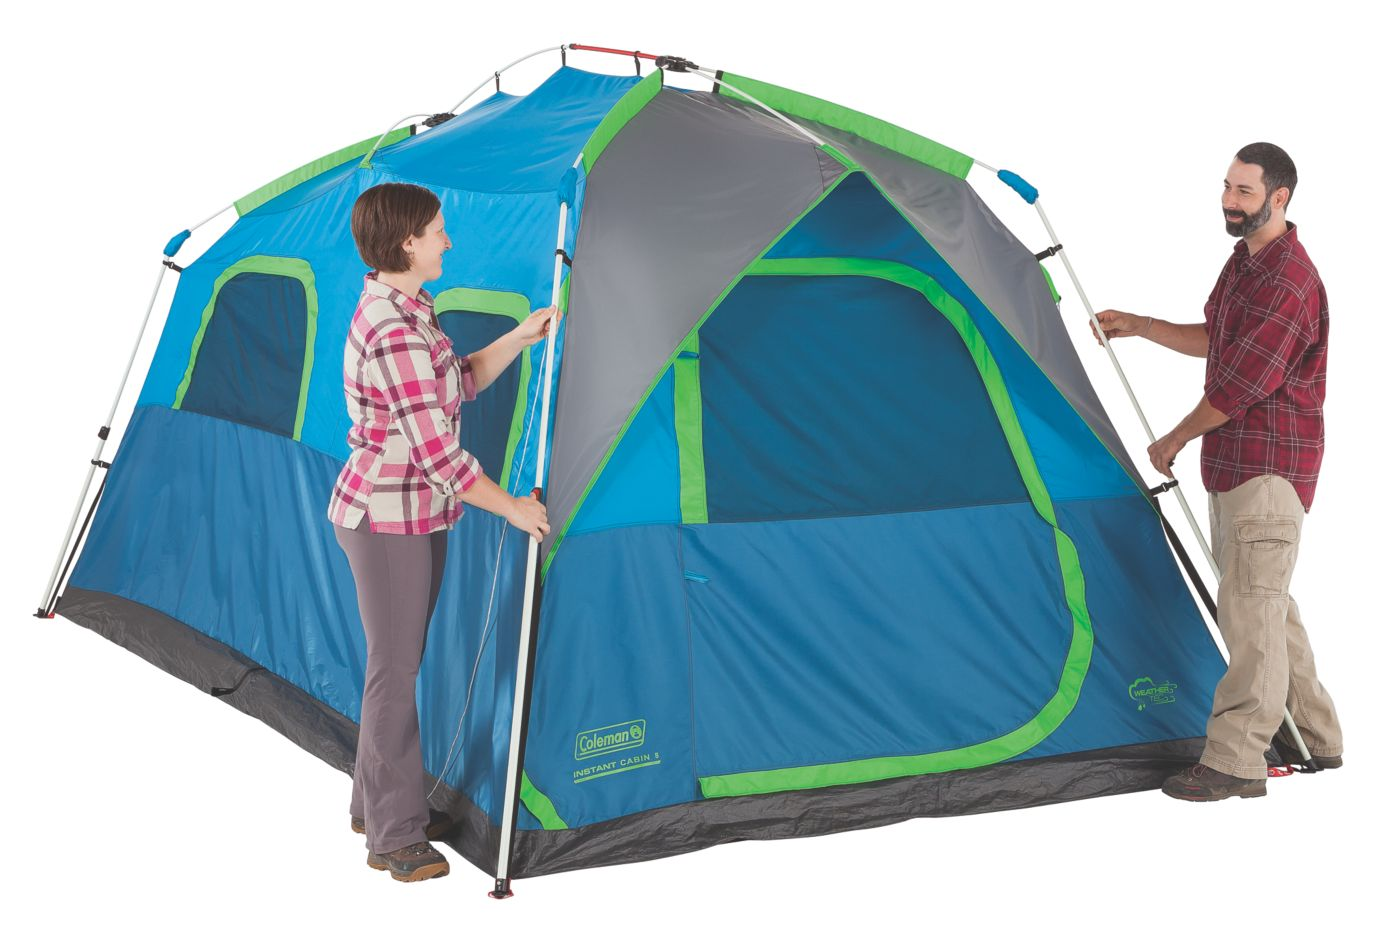 ... Signal Mountain™ 8-Person Instant Tent ...  sc 1 st  Coleman & Instant Tents | 8 Person Tent | Coleman